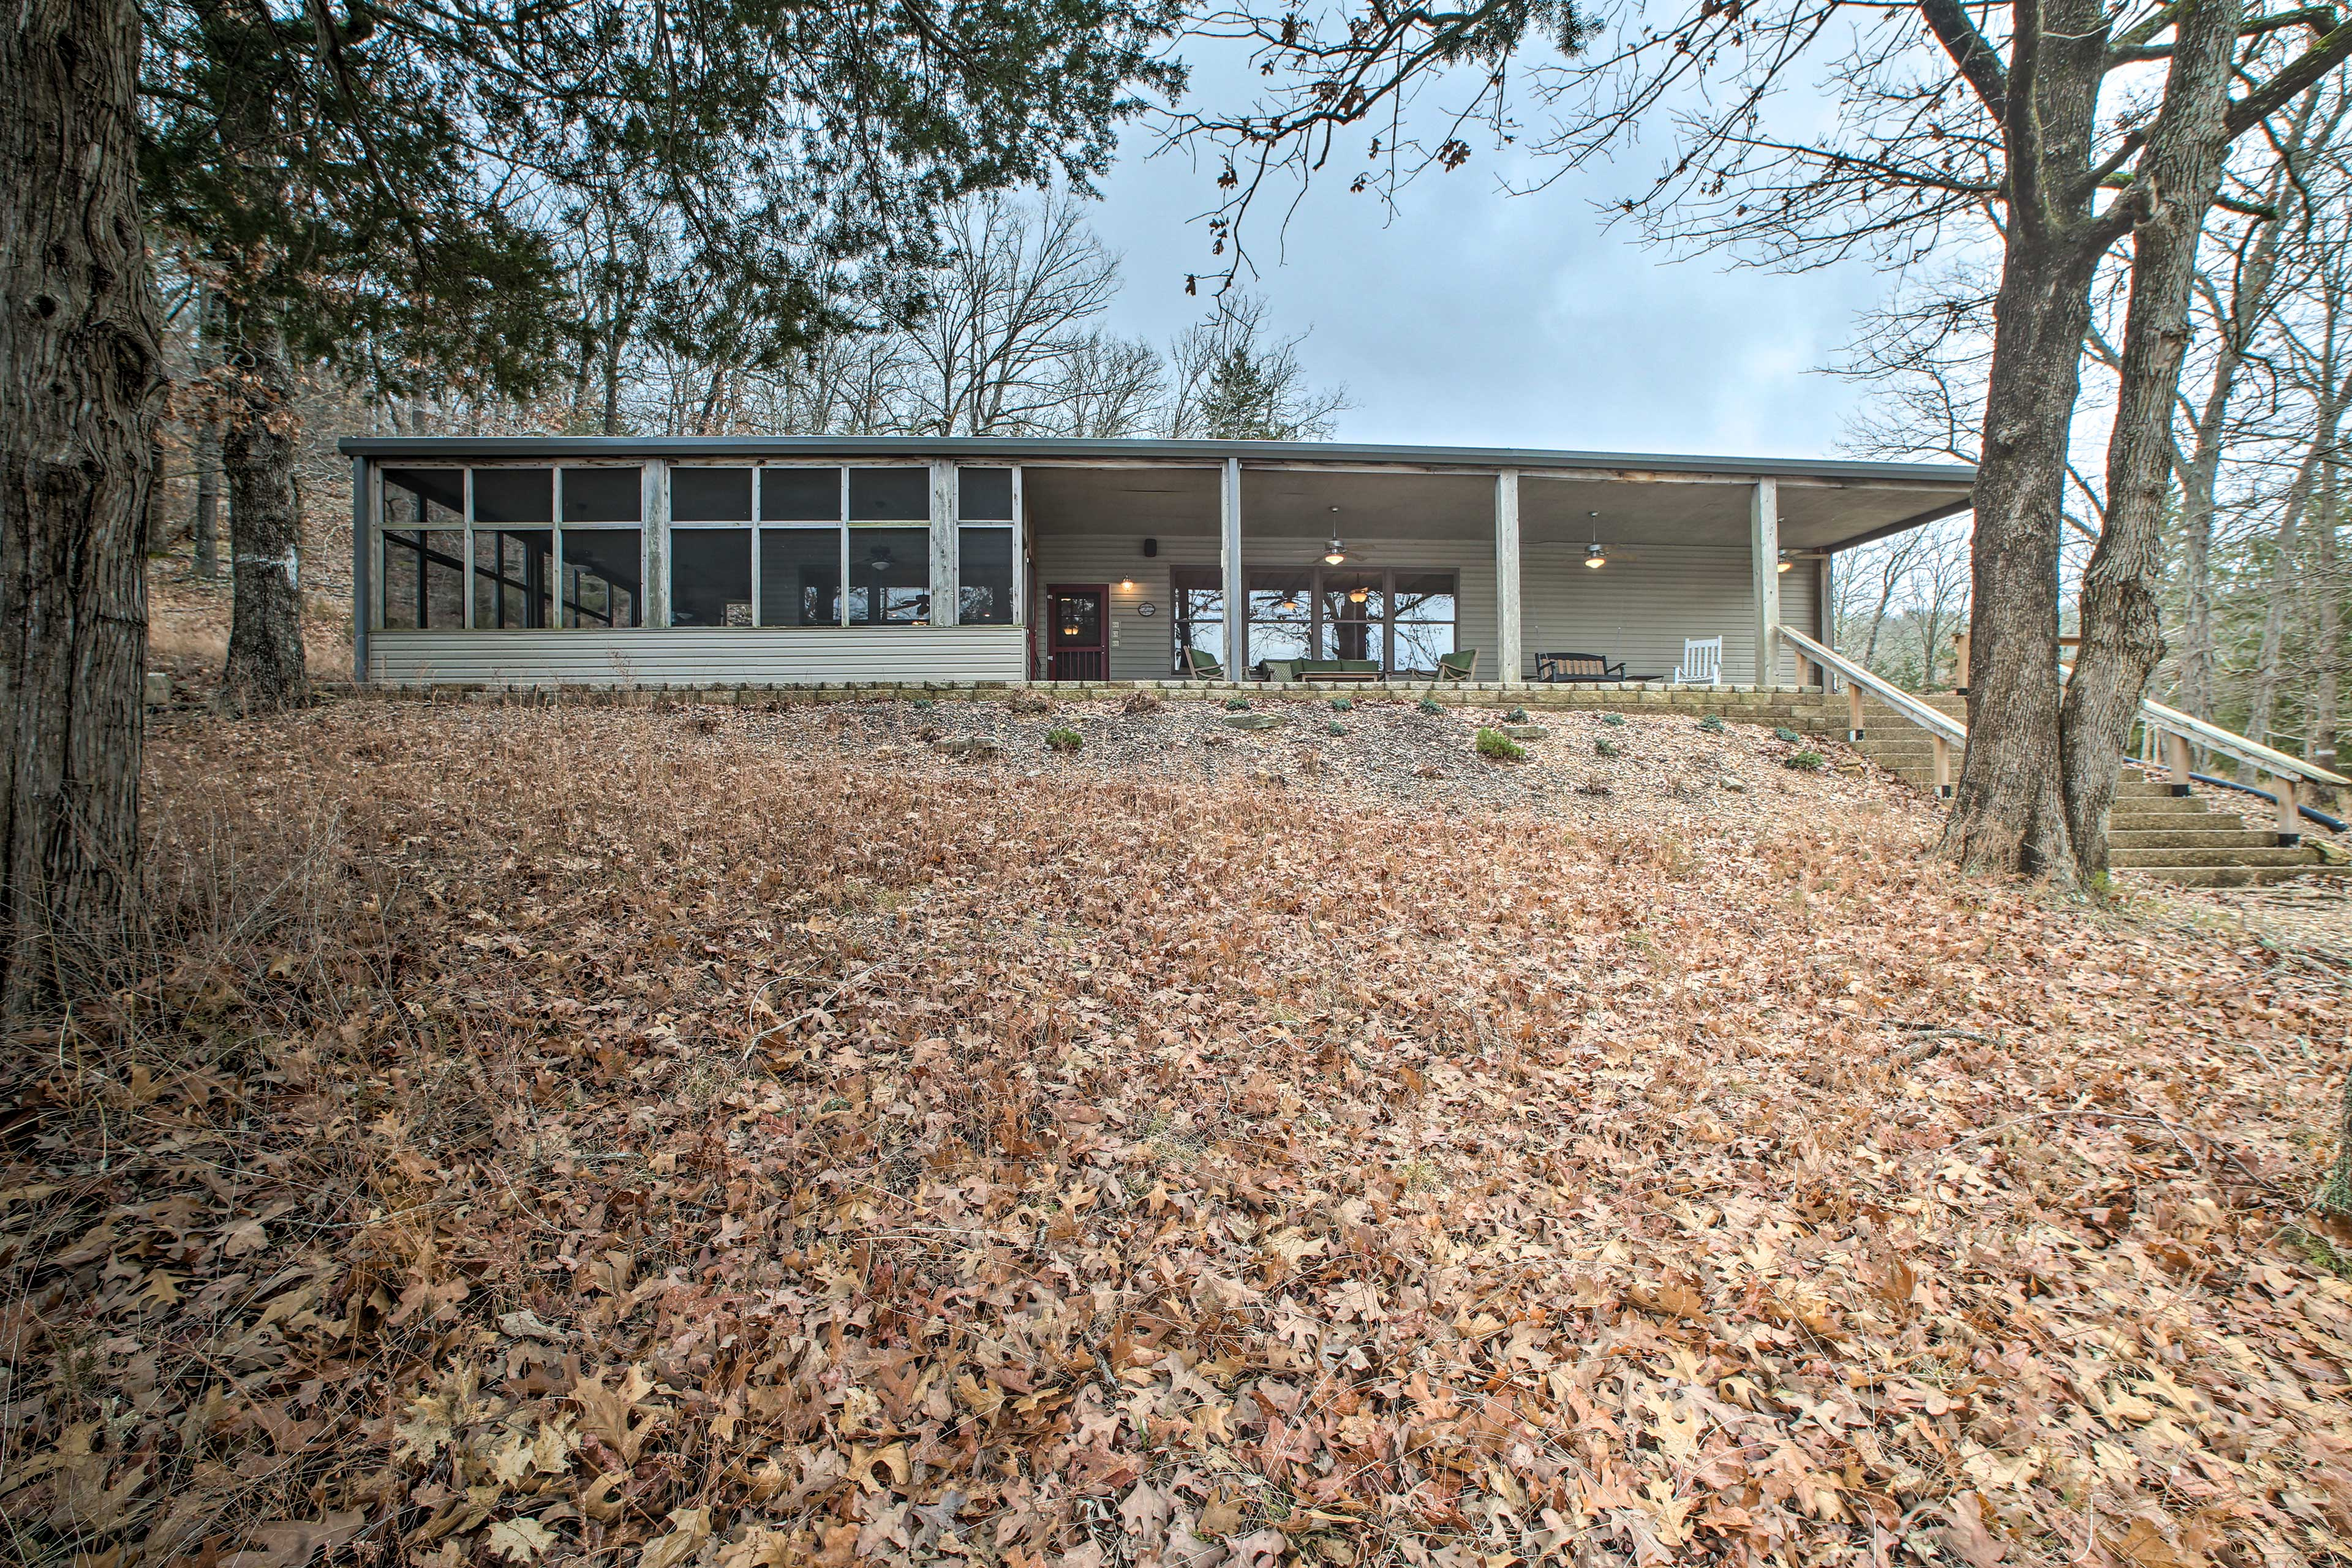 Just steps from the water, this spacious lakefront home is a great getaway.